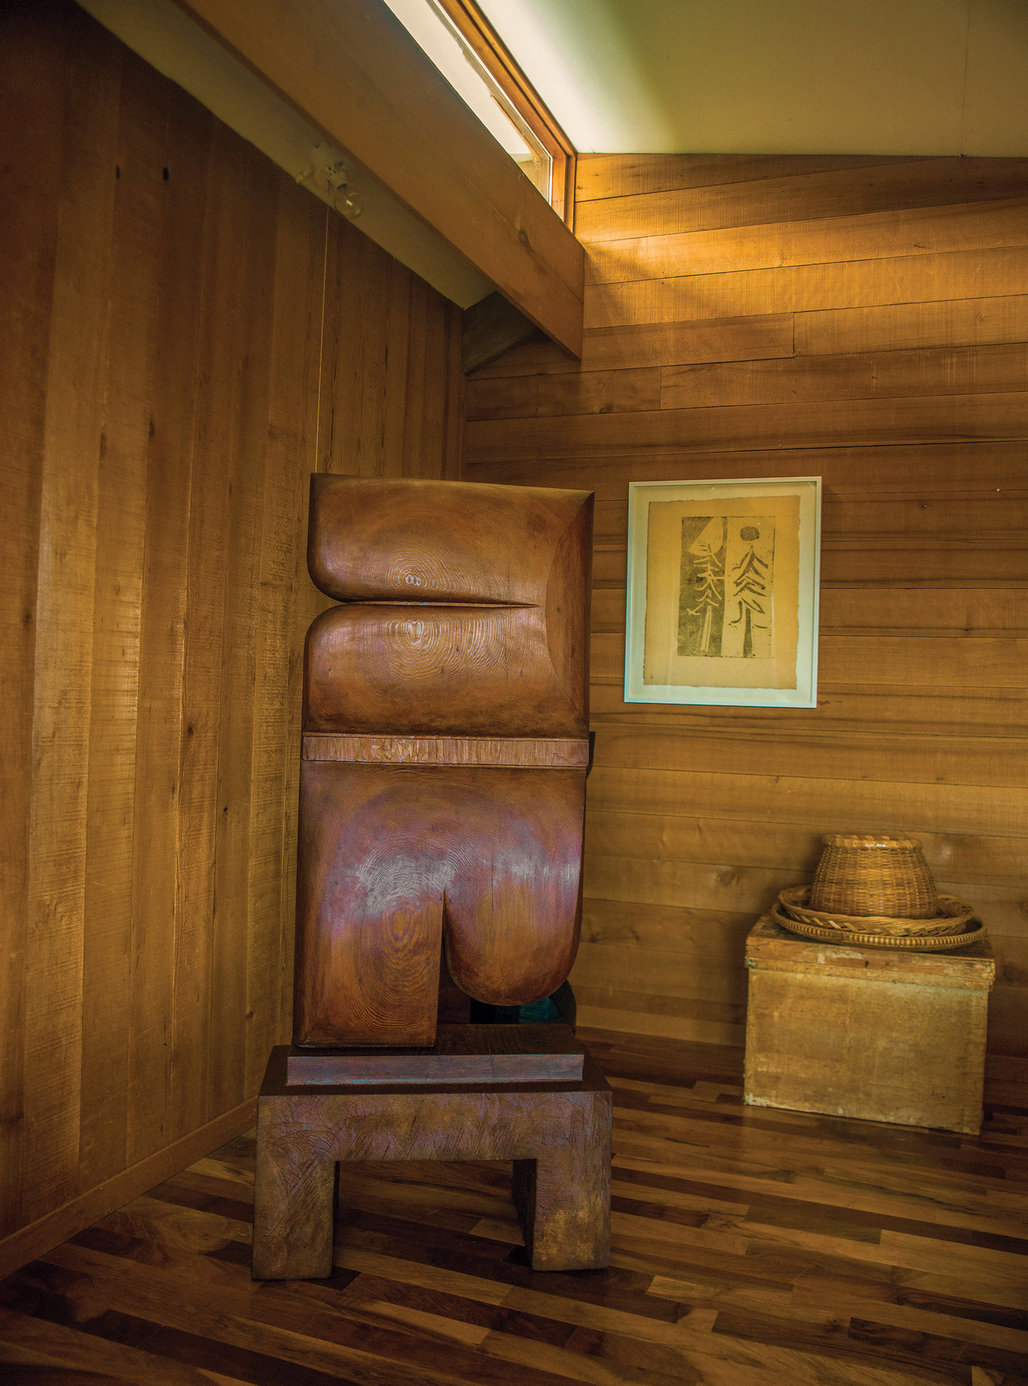 A totemic sculpture by Blunk in the corner of the master bedroom. Credit Lisa Eisner